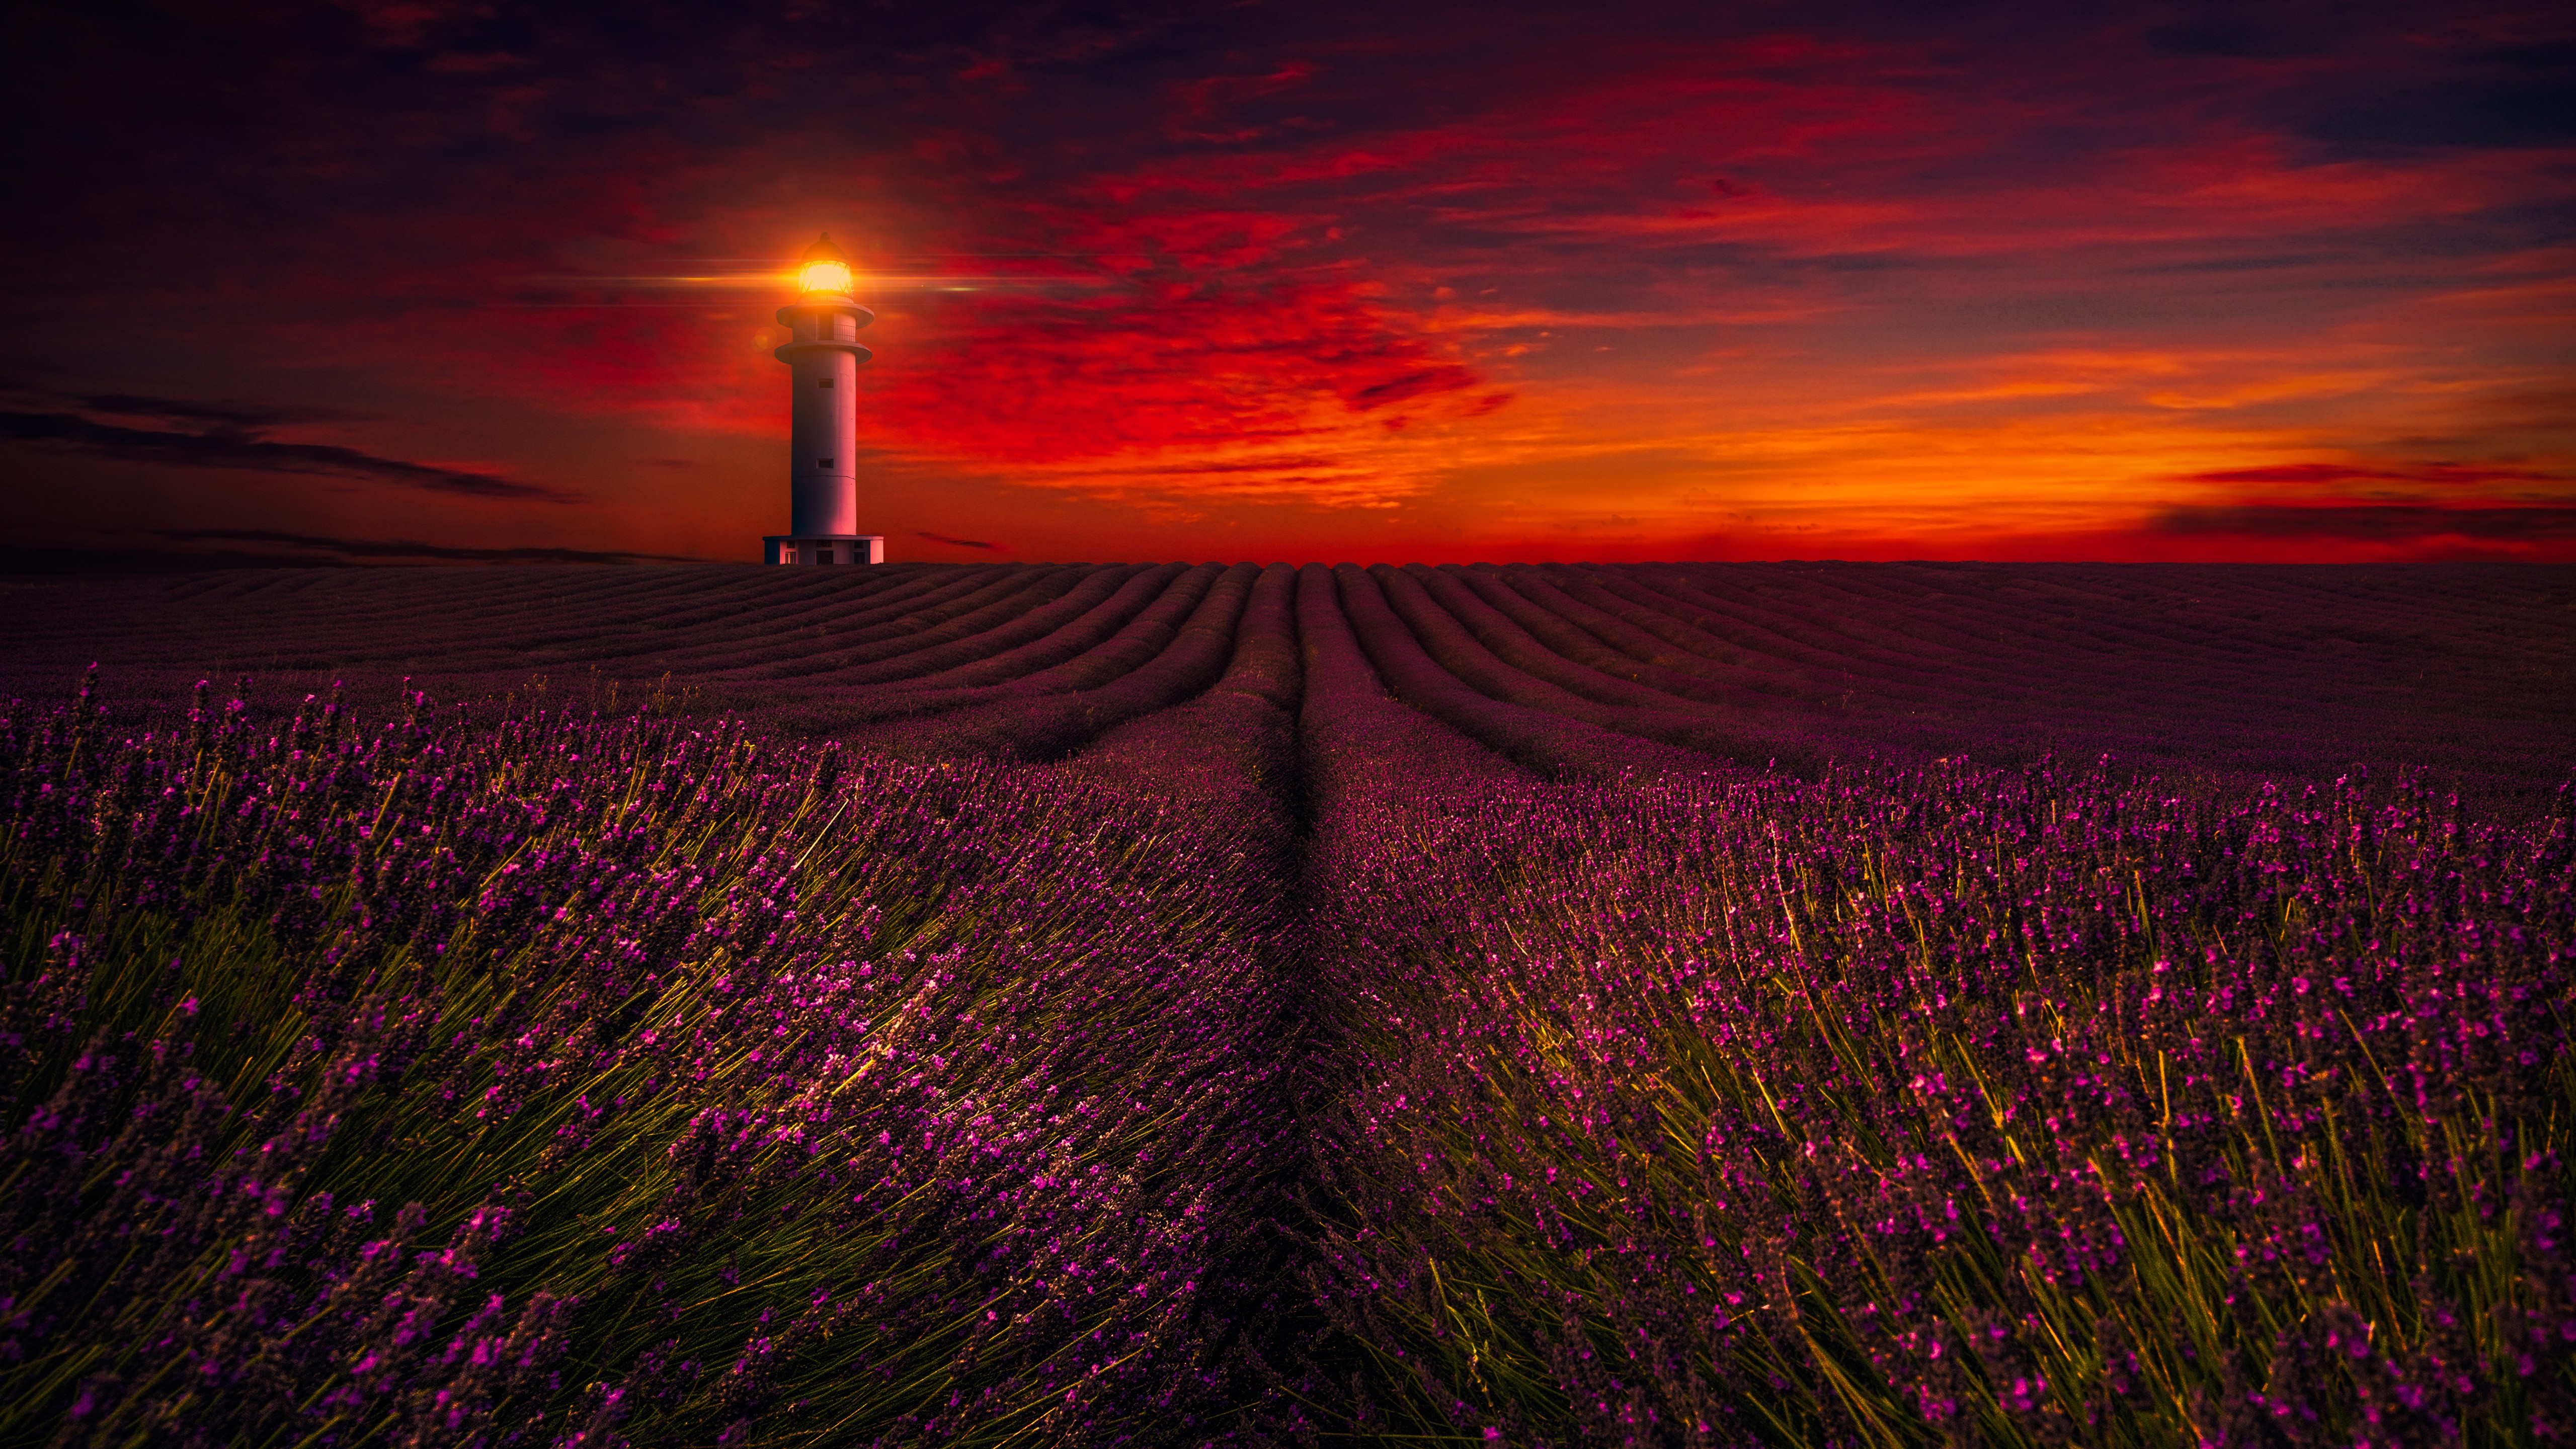 3d Wallpapers Wild Animals Sunset Lavender Field Lighthouse 5k Wallpapers Hd